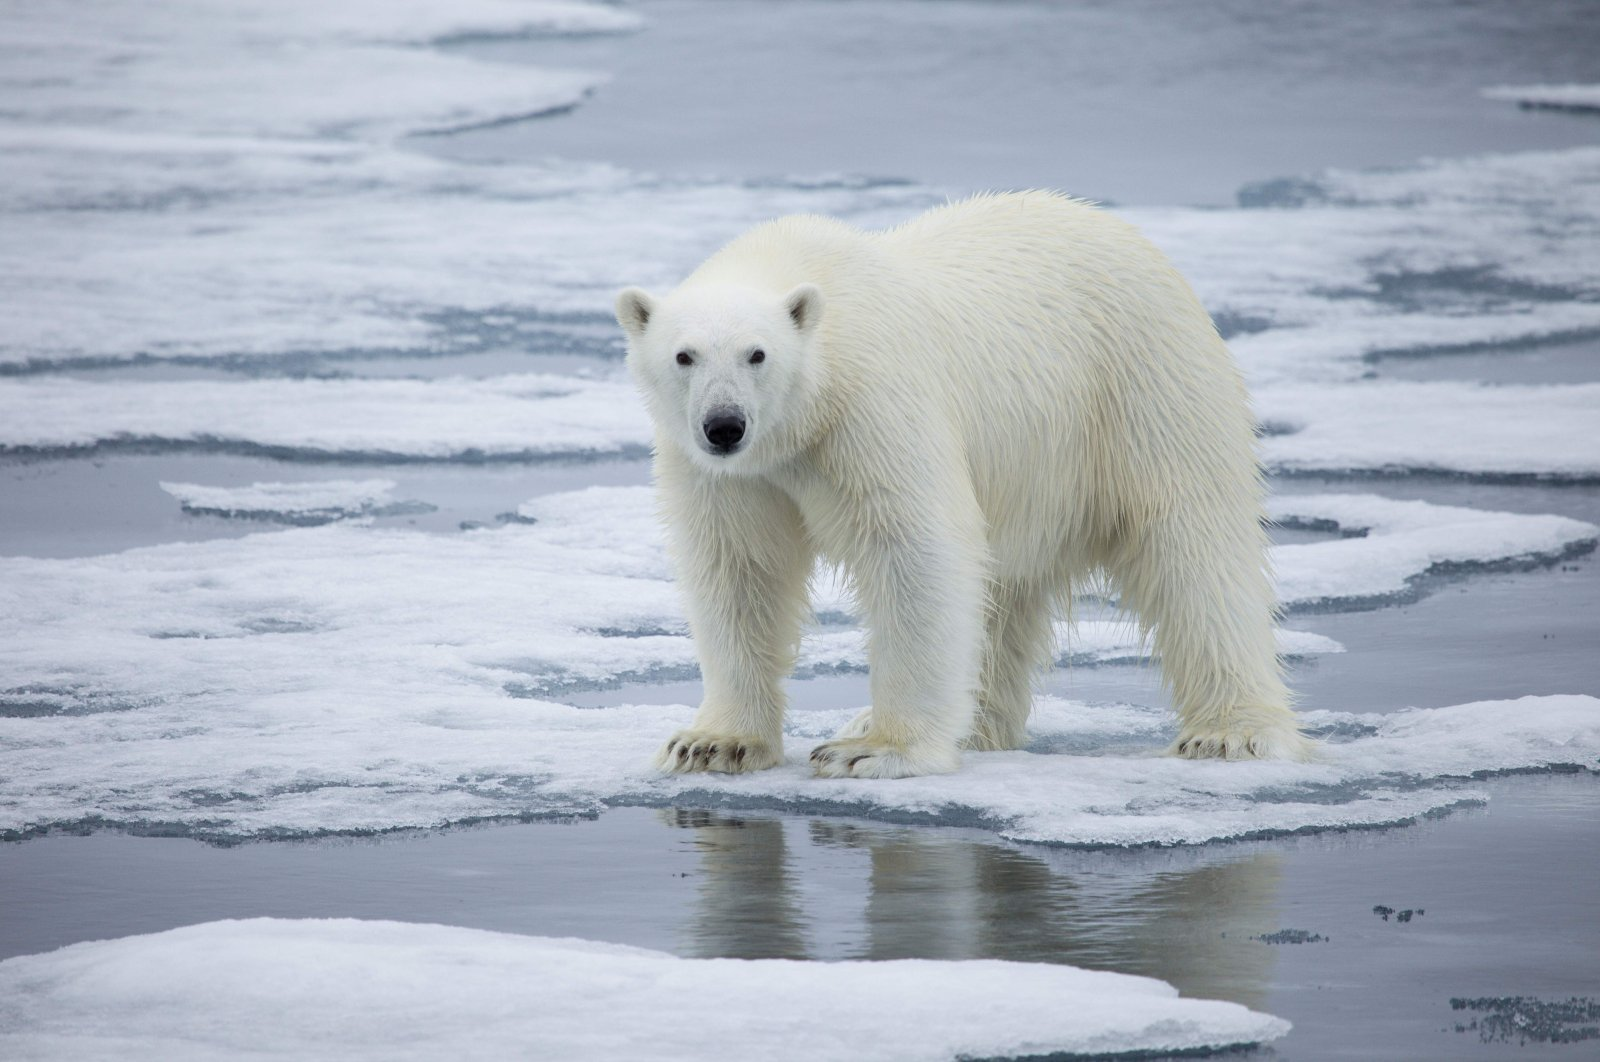 A handout photo made available on July 17, 2020 by Polar Bears International shows a polar bear standing on melting sea ice in Svalbard, Norway, in 2013. (AFP Photo)